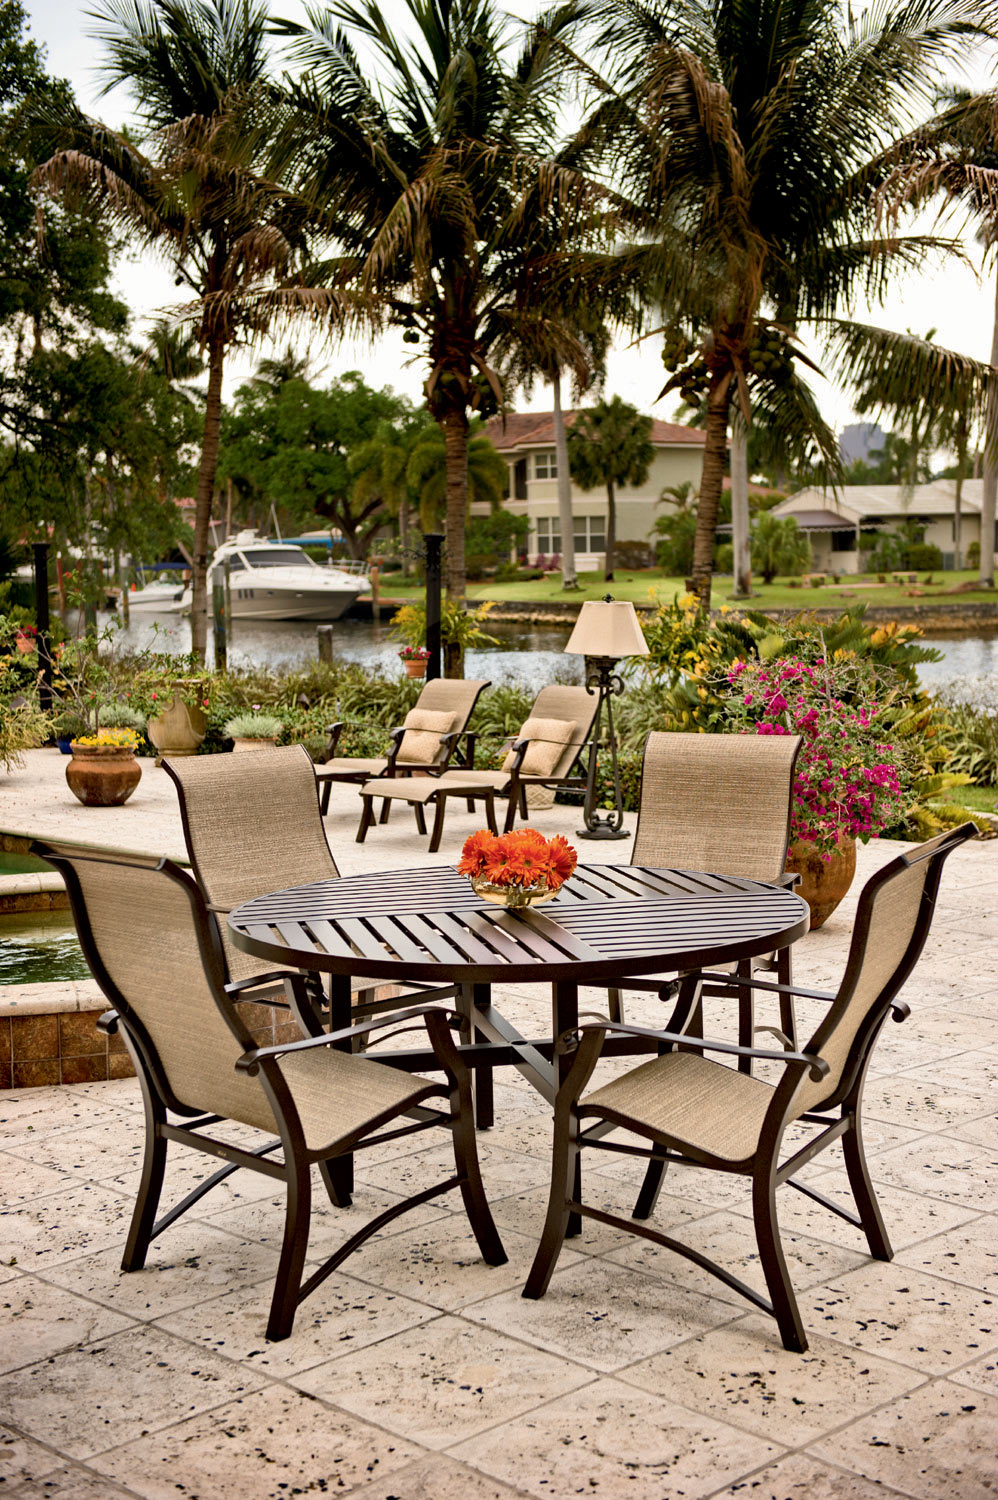 5 Pc Cortland Sling Casual Aluminum Dining Set | Woodard Outdoor Furniture  | Home Gallery